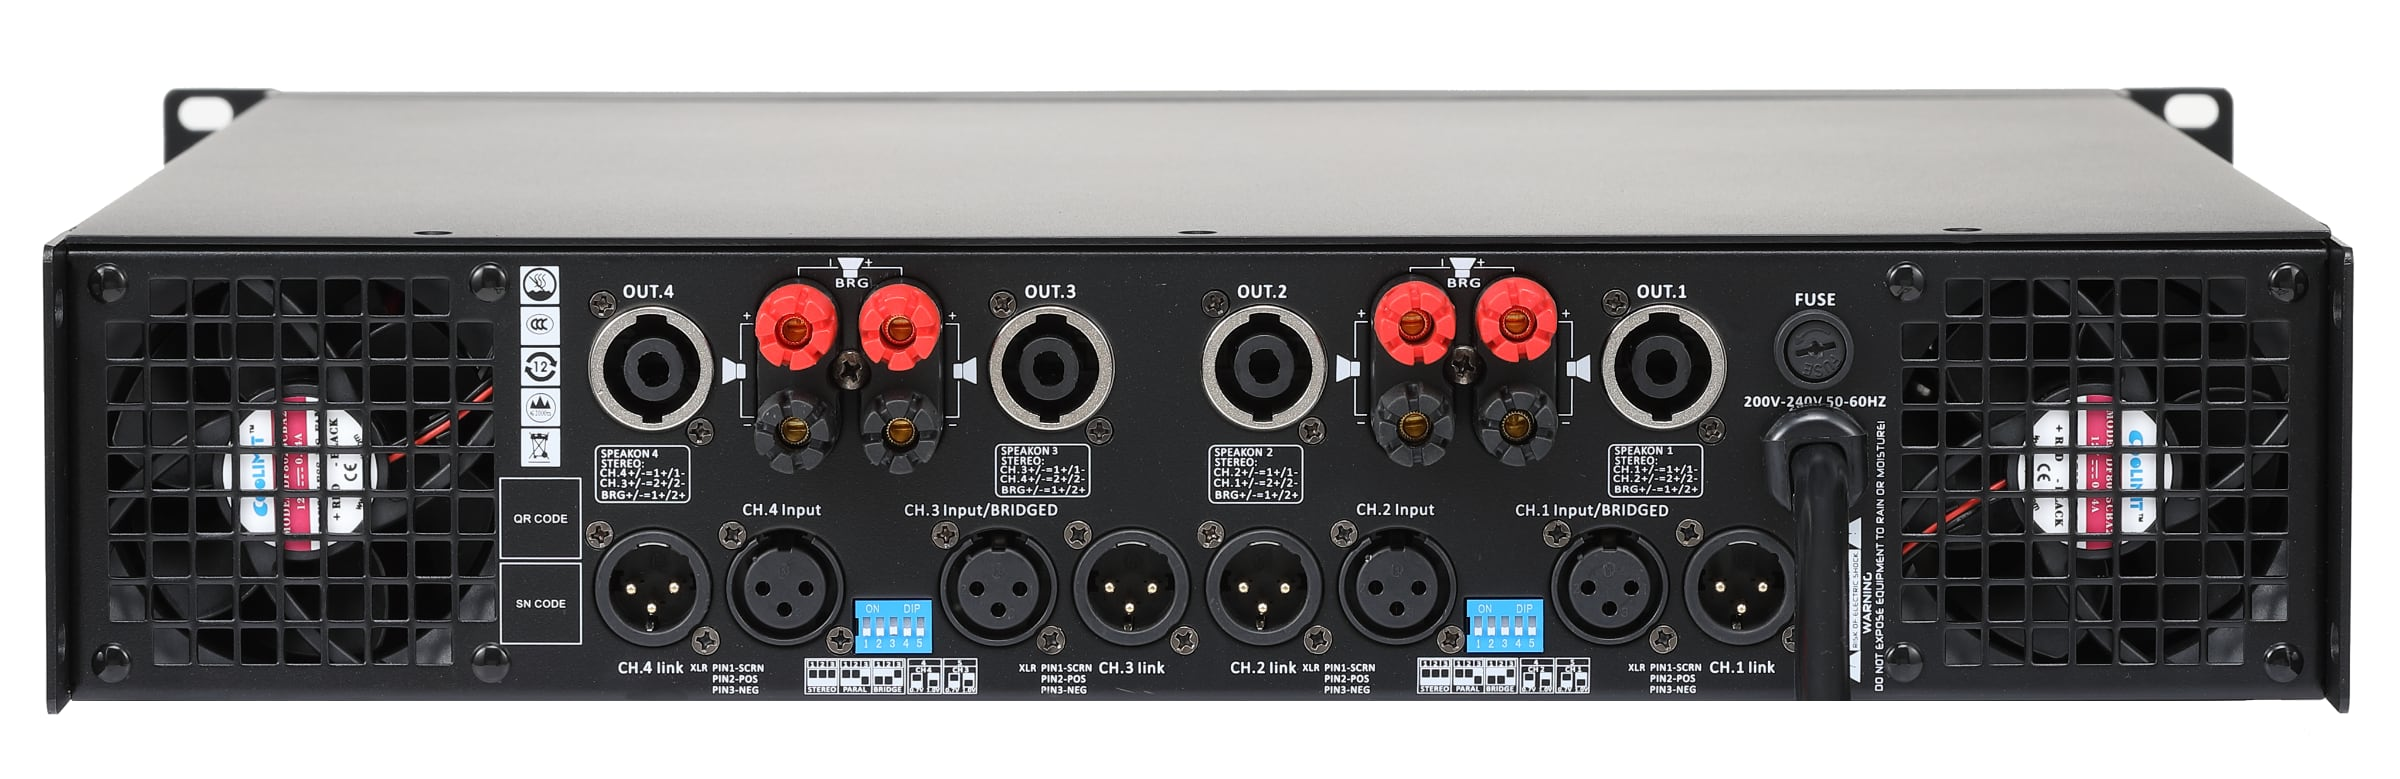 Công suất AAP DX-8004